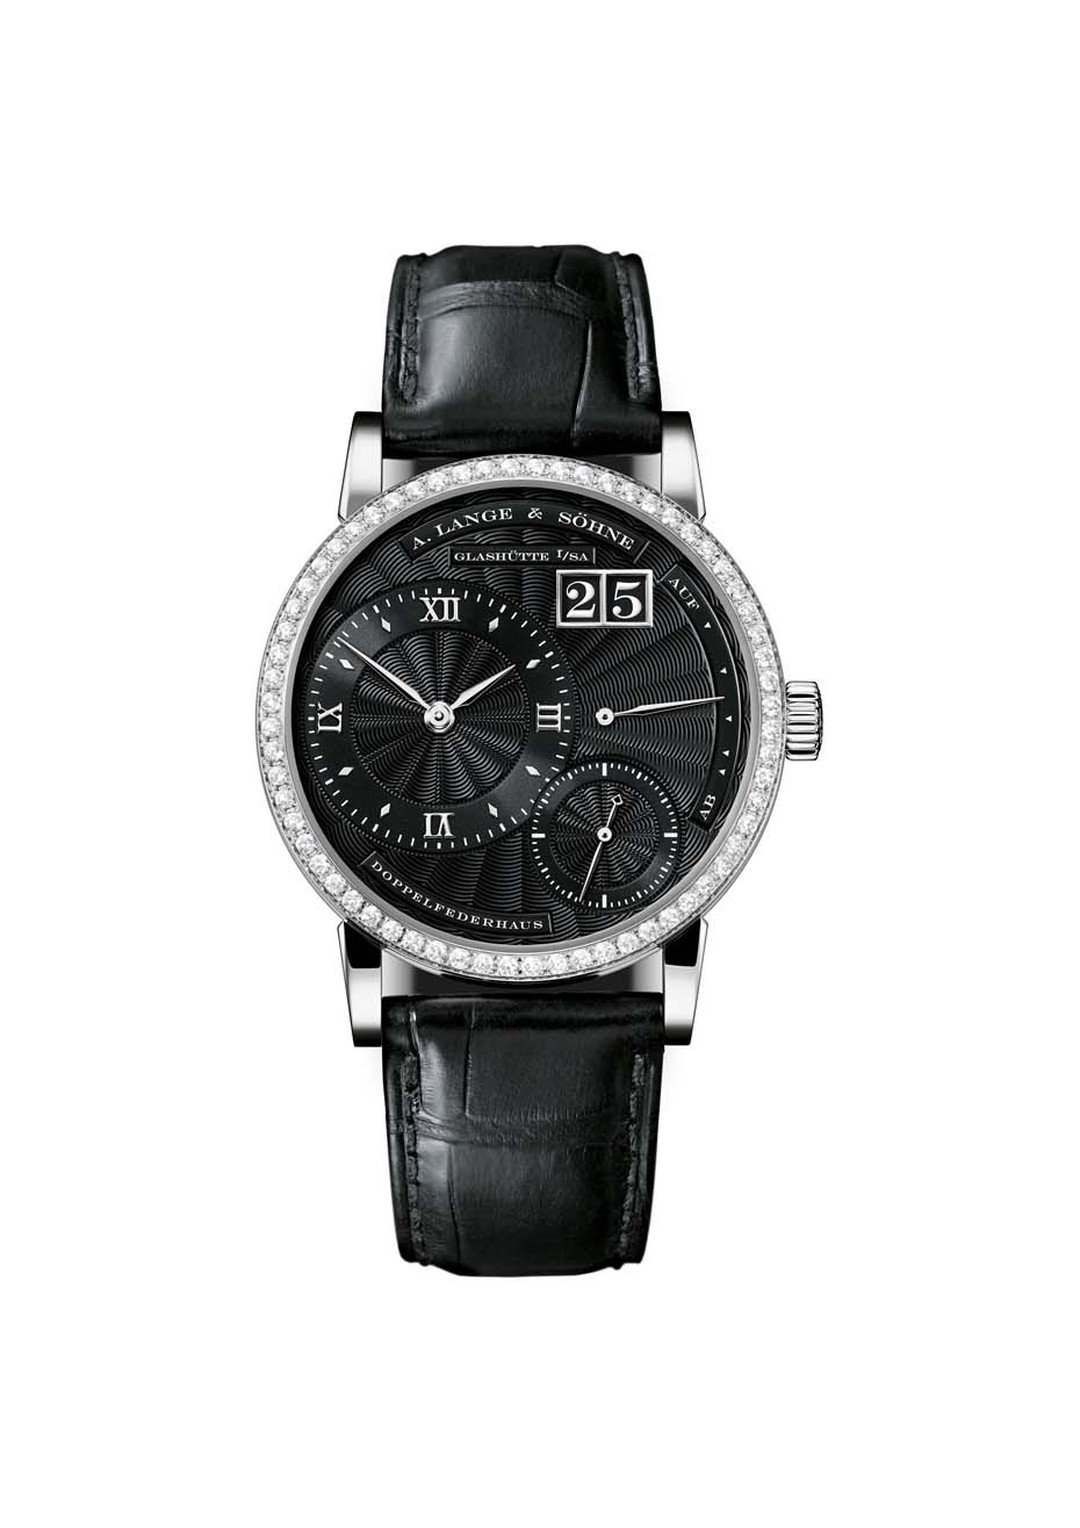 The pair to the A.Lange & Söhne Lange 1 watch in black is the Little Lange 1 watch for women, which measures 36.1mm across and has a diamond-set bezel.